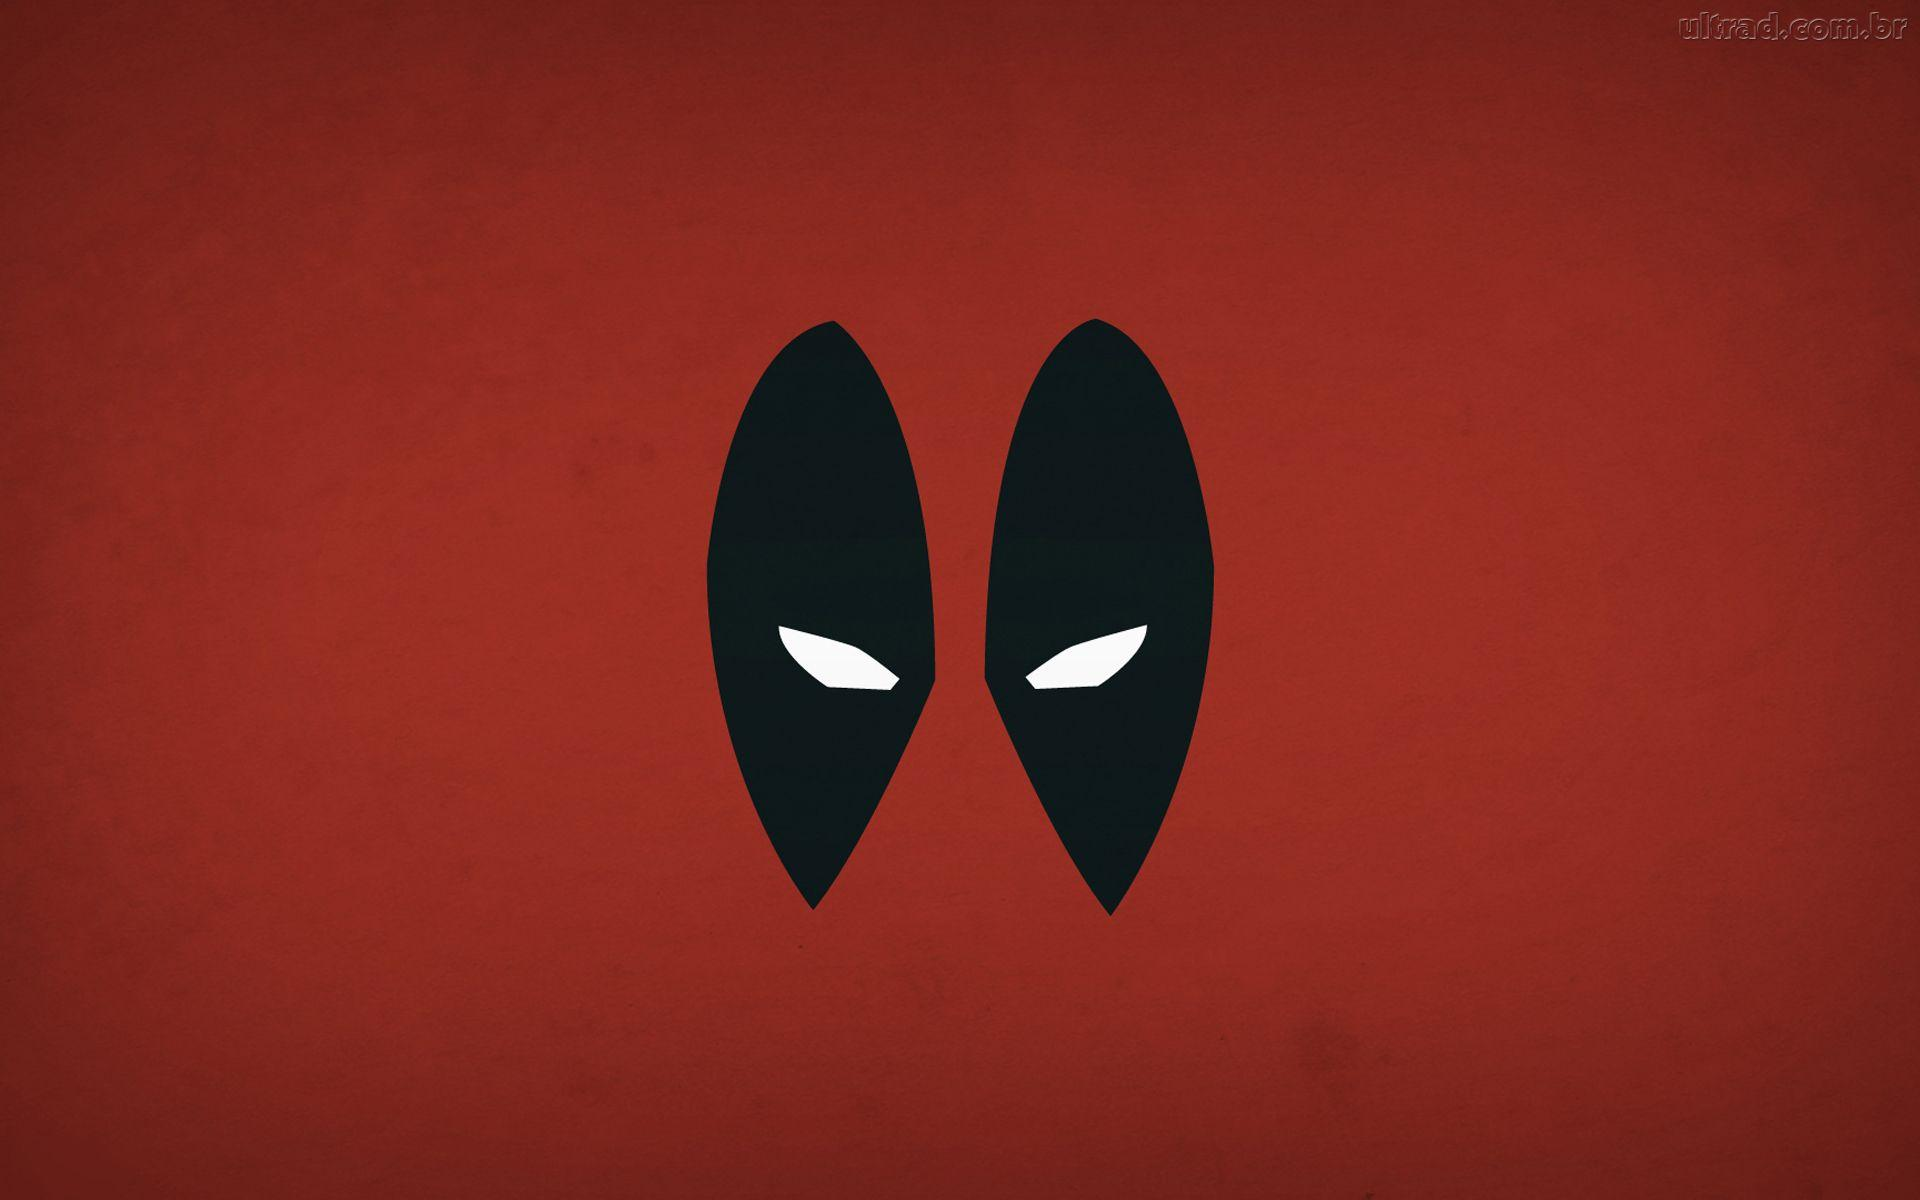 Deadpool Wallpapers   Wallpaper Cave Deadpool Wallpapers   Full HD wallpaper search